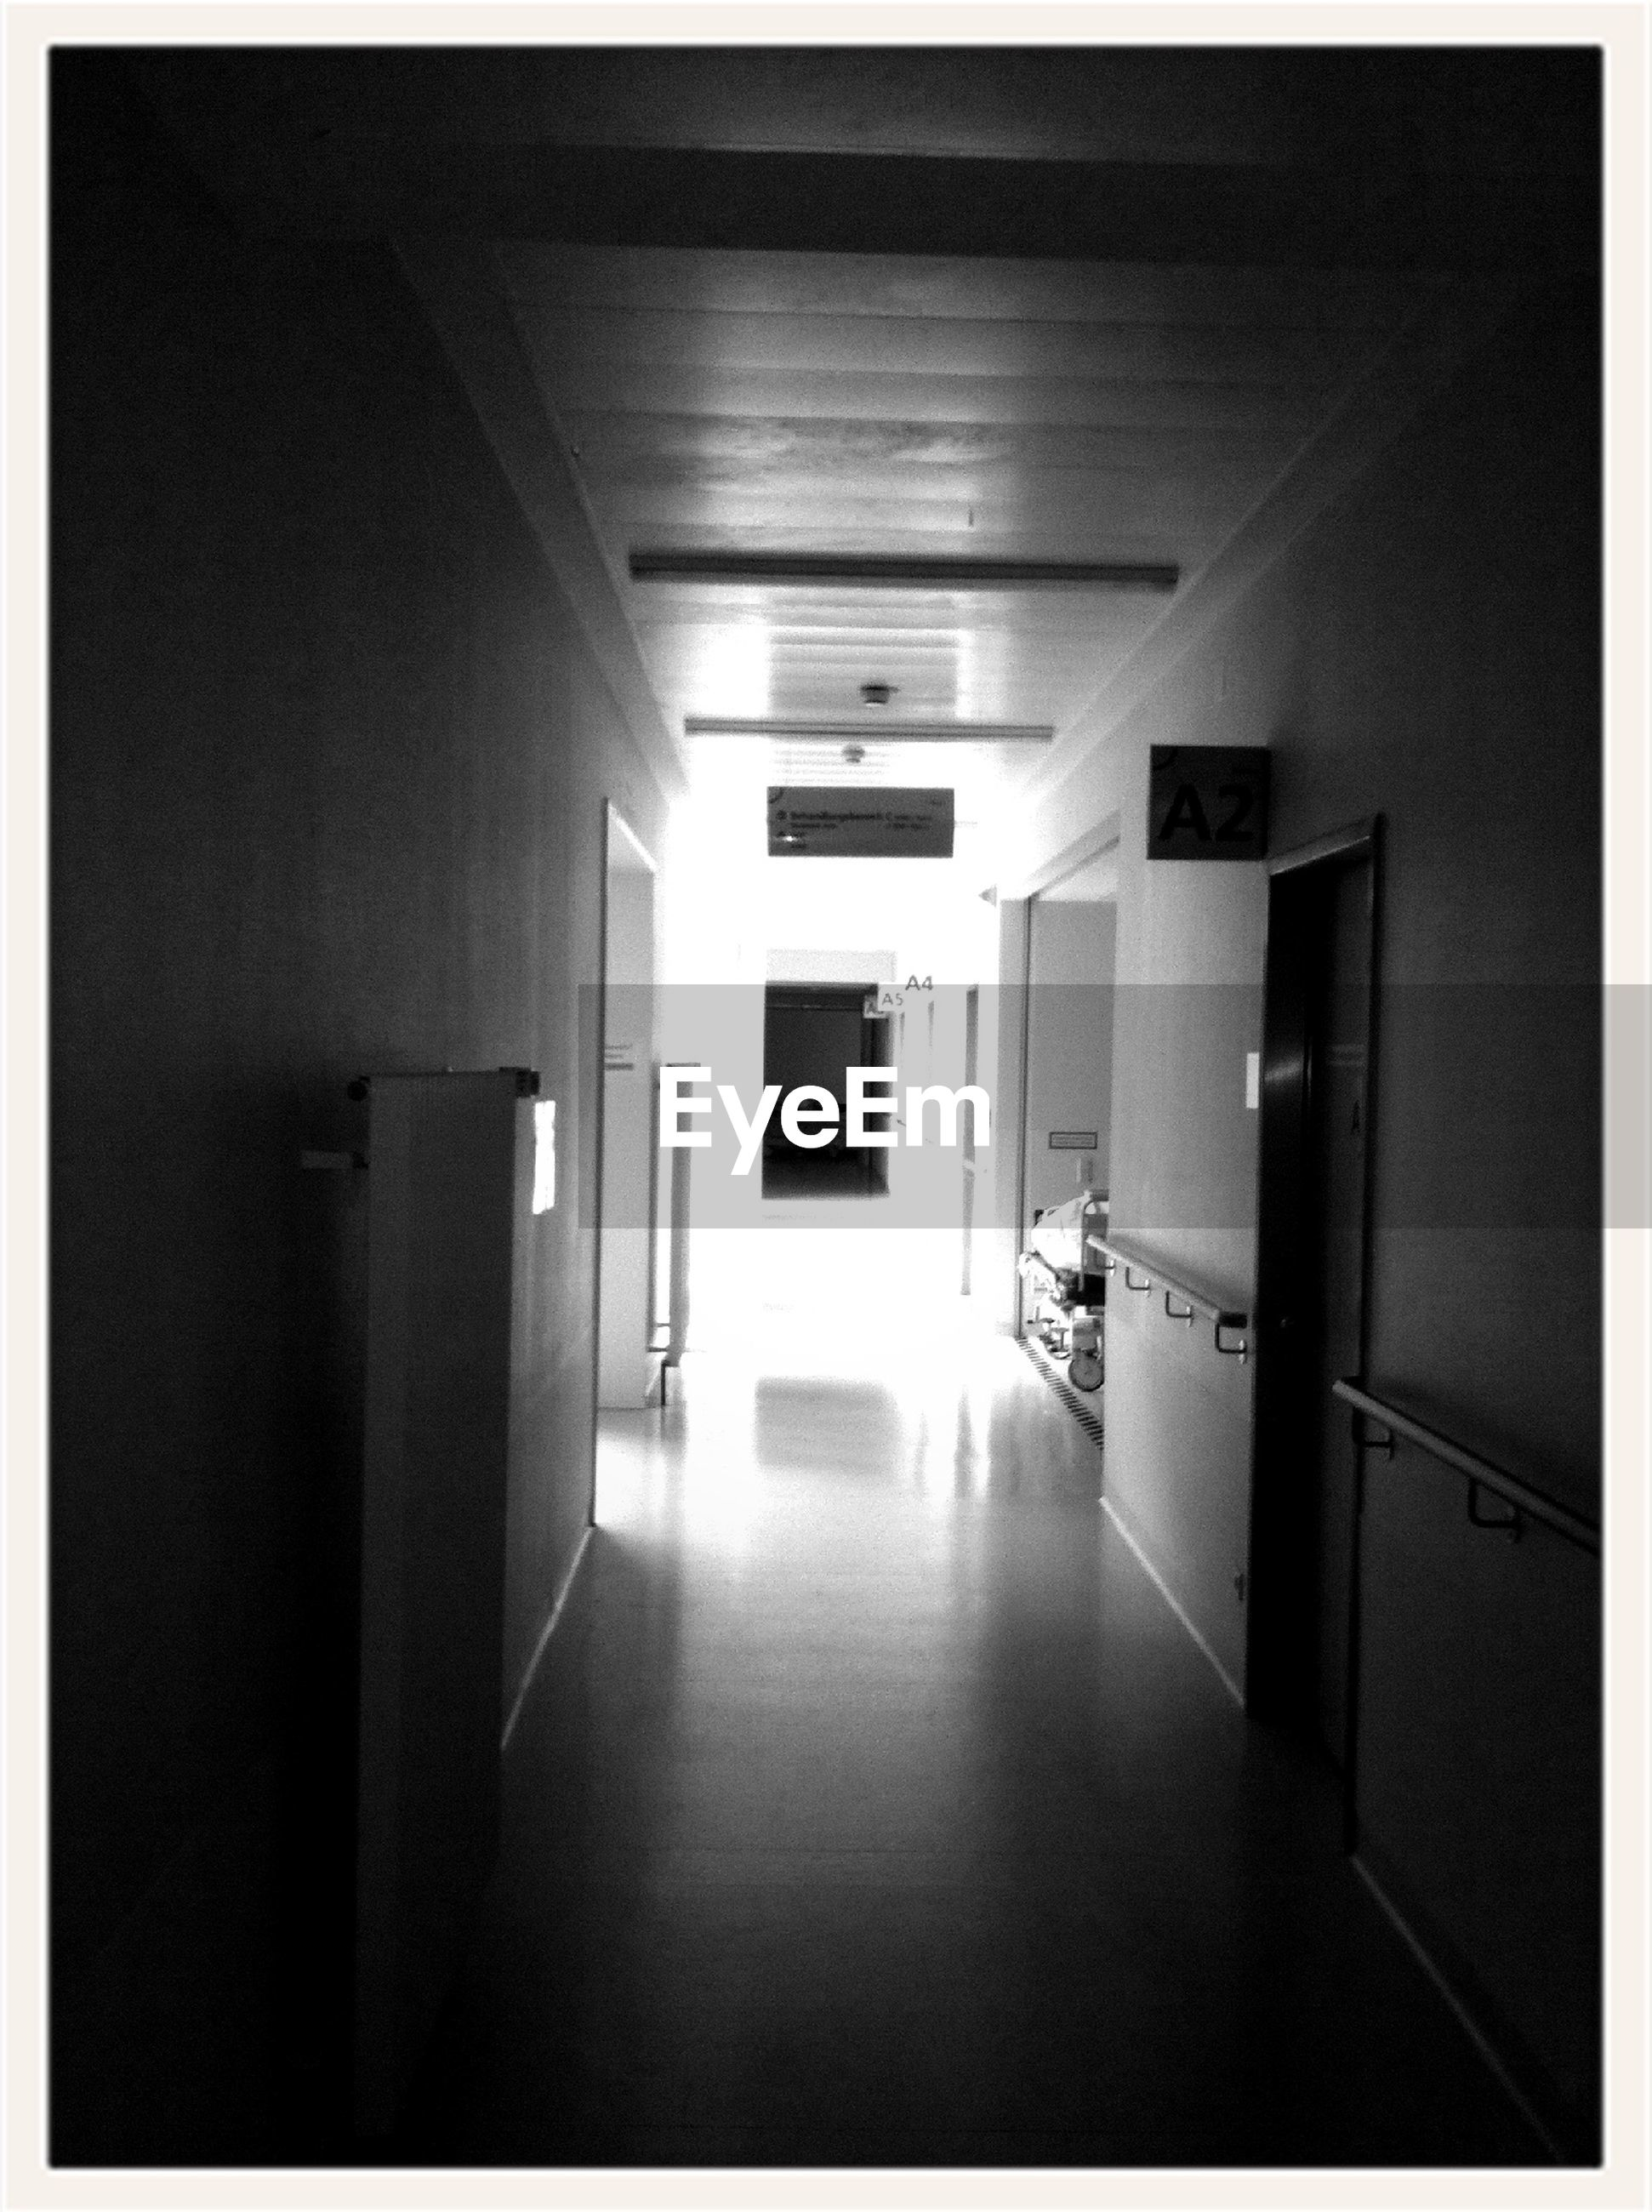 indoors, architecture, built structure, corridor, door, empty, the way forward, transfer print, absence, tiled floor, flooring, illuminated, wall, auto post production filter, wall - building feature, narrow, window, house, no people, ceiling